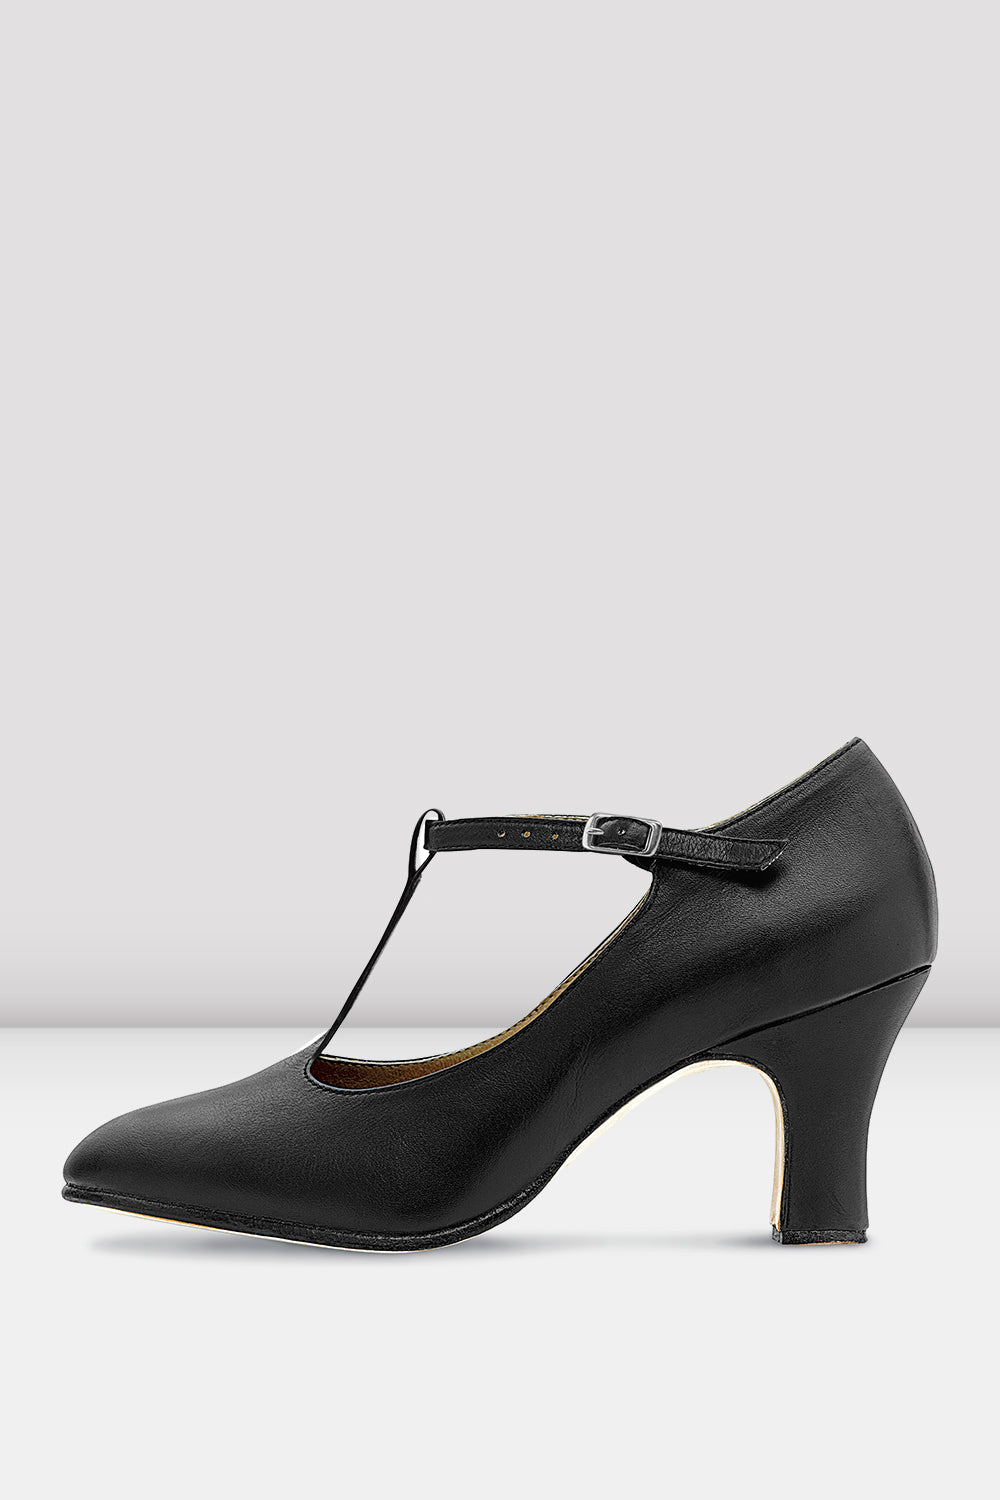 Ladies Chord T-Strap 3 inch Heel Character Shoes - BLOCH US